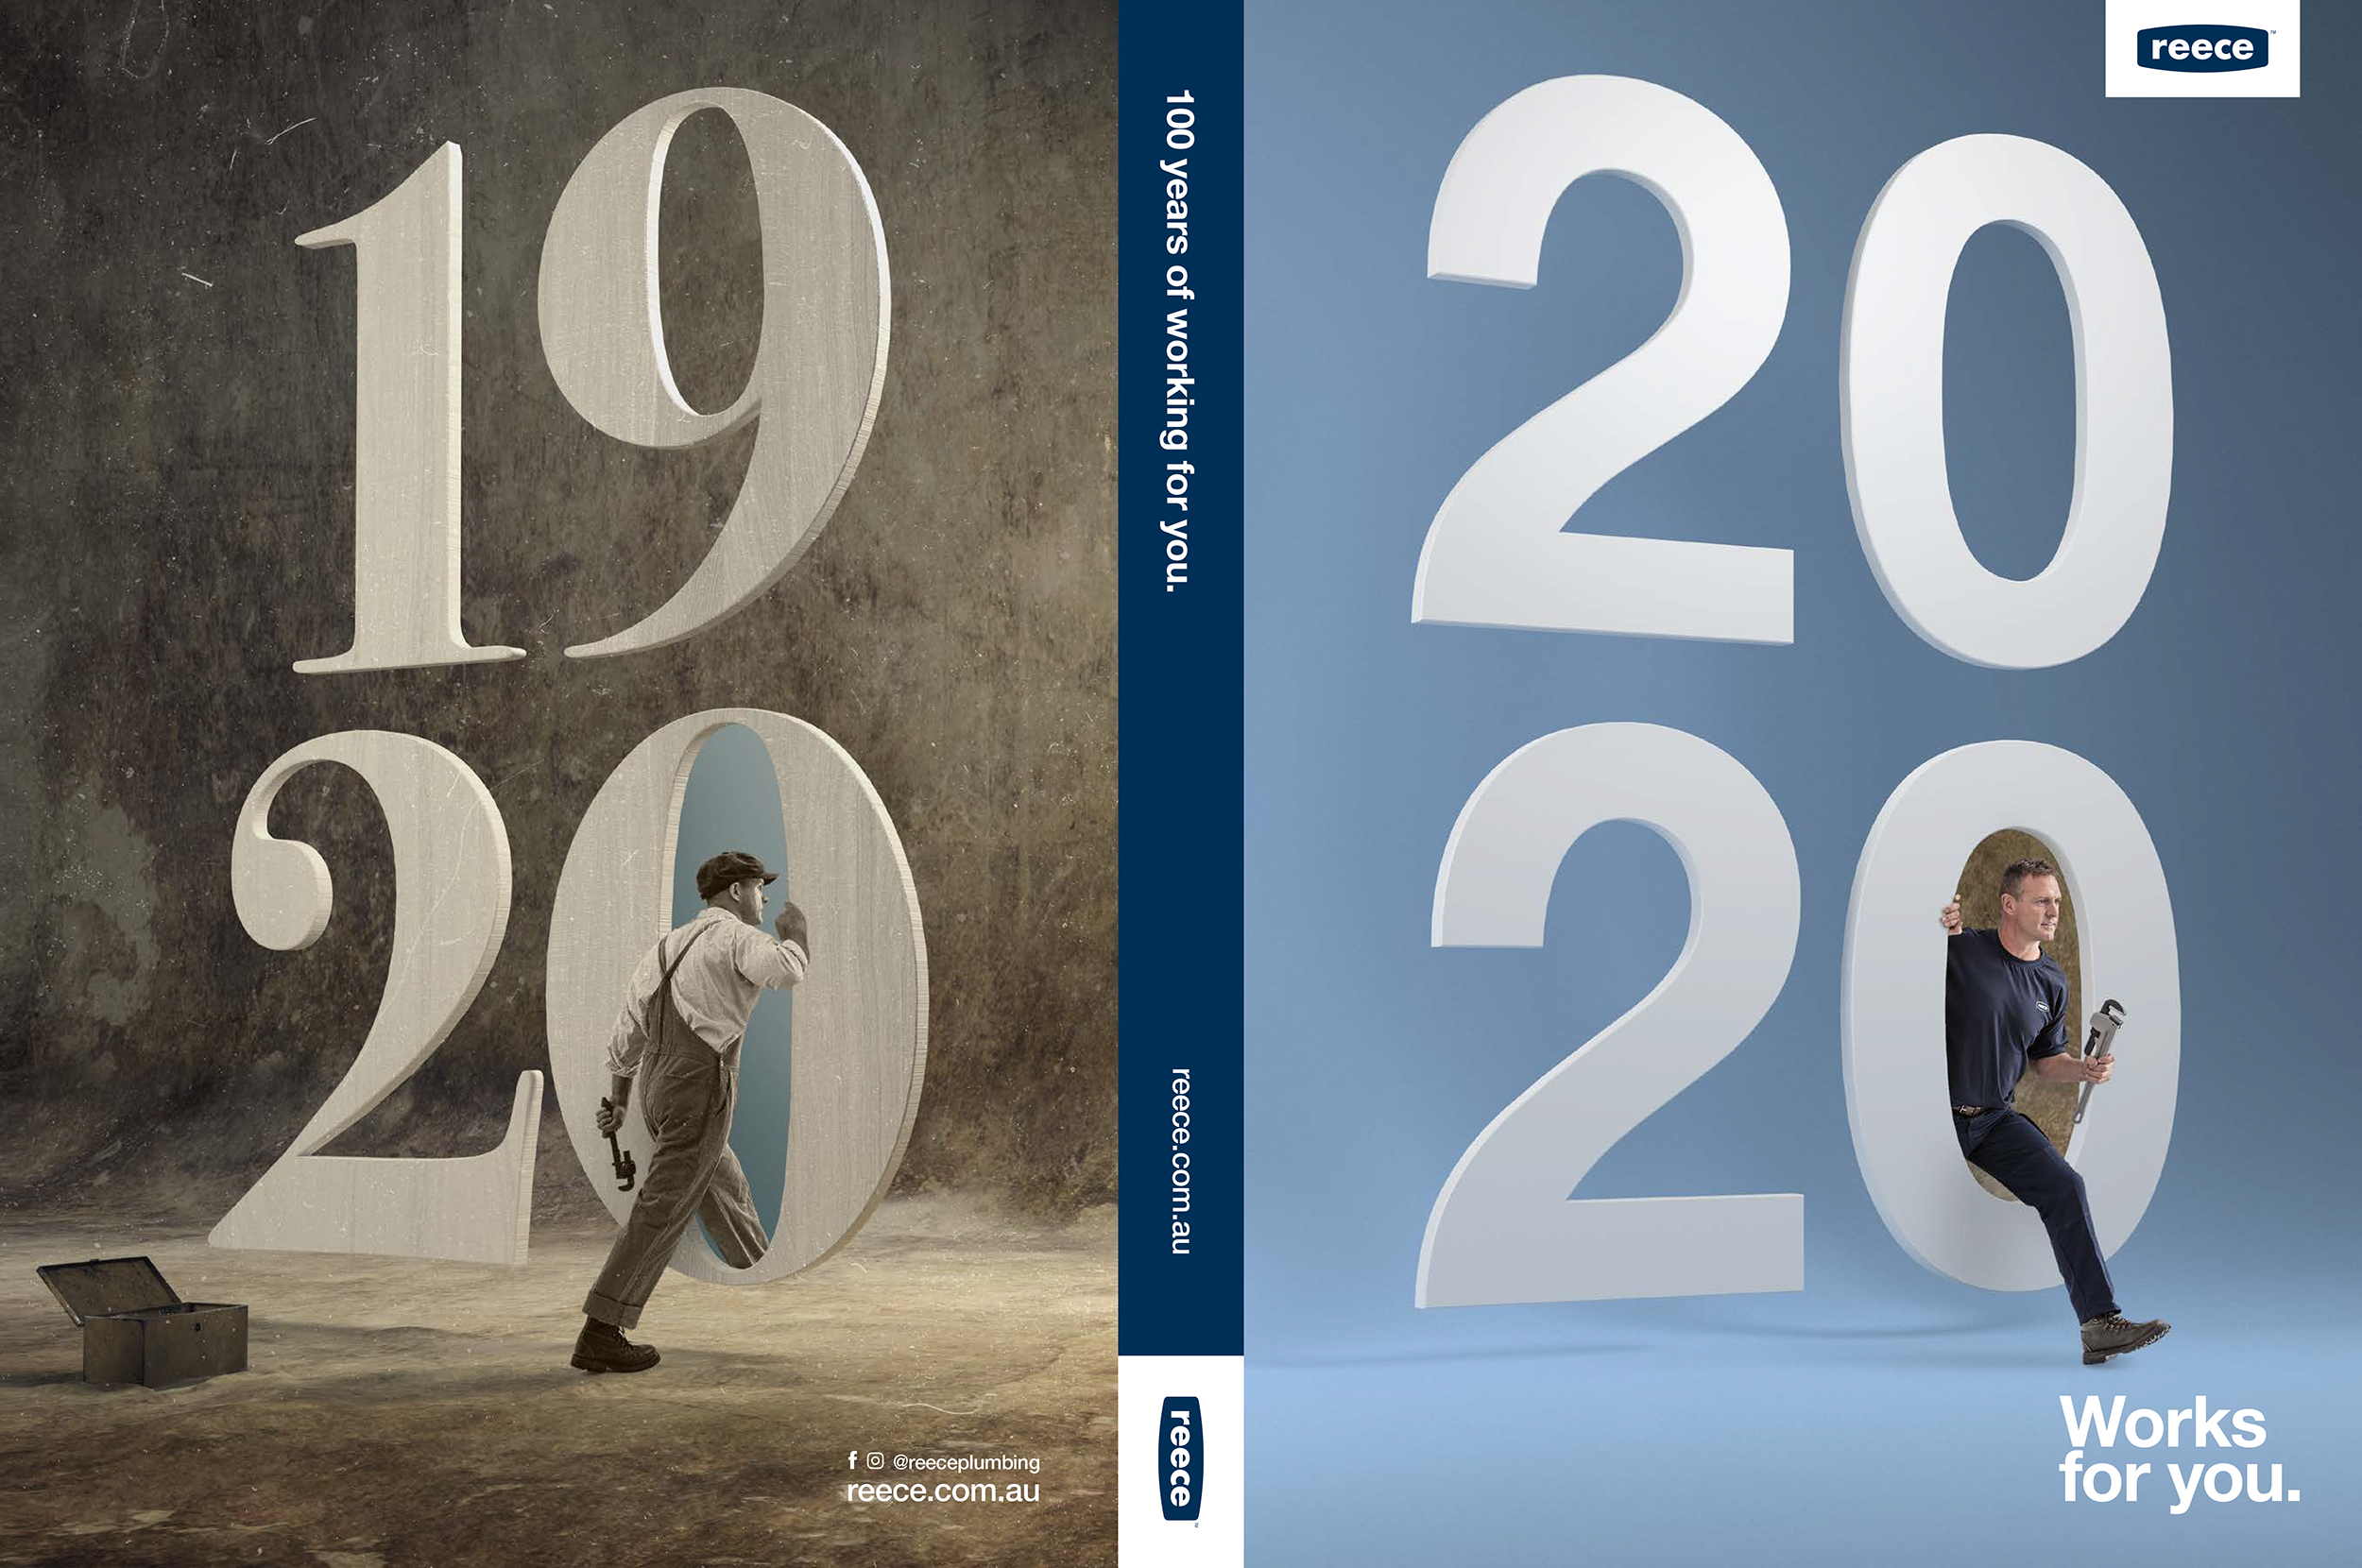 Campaign-thom-rigney-professional-photographer-advertising-commissioned-reece-plumbing-melbourne-australia-tradesman-009